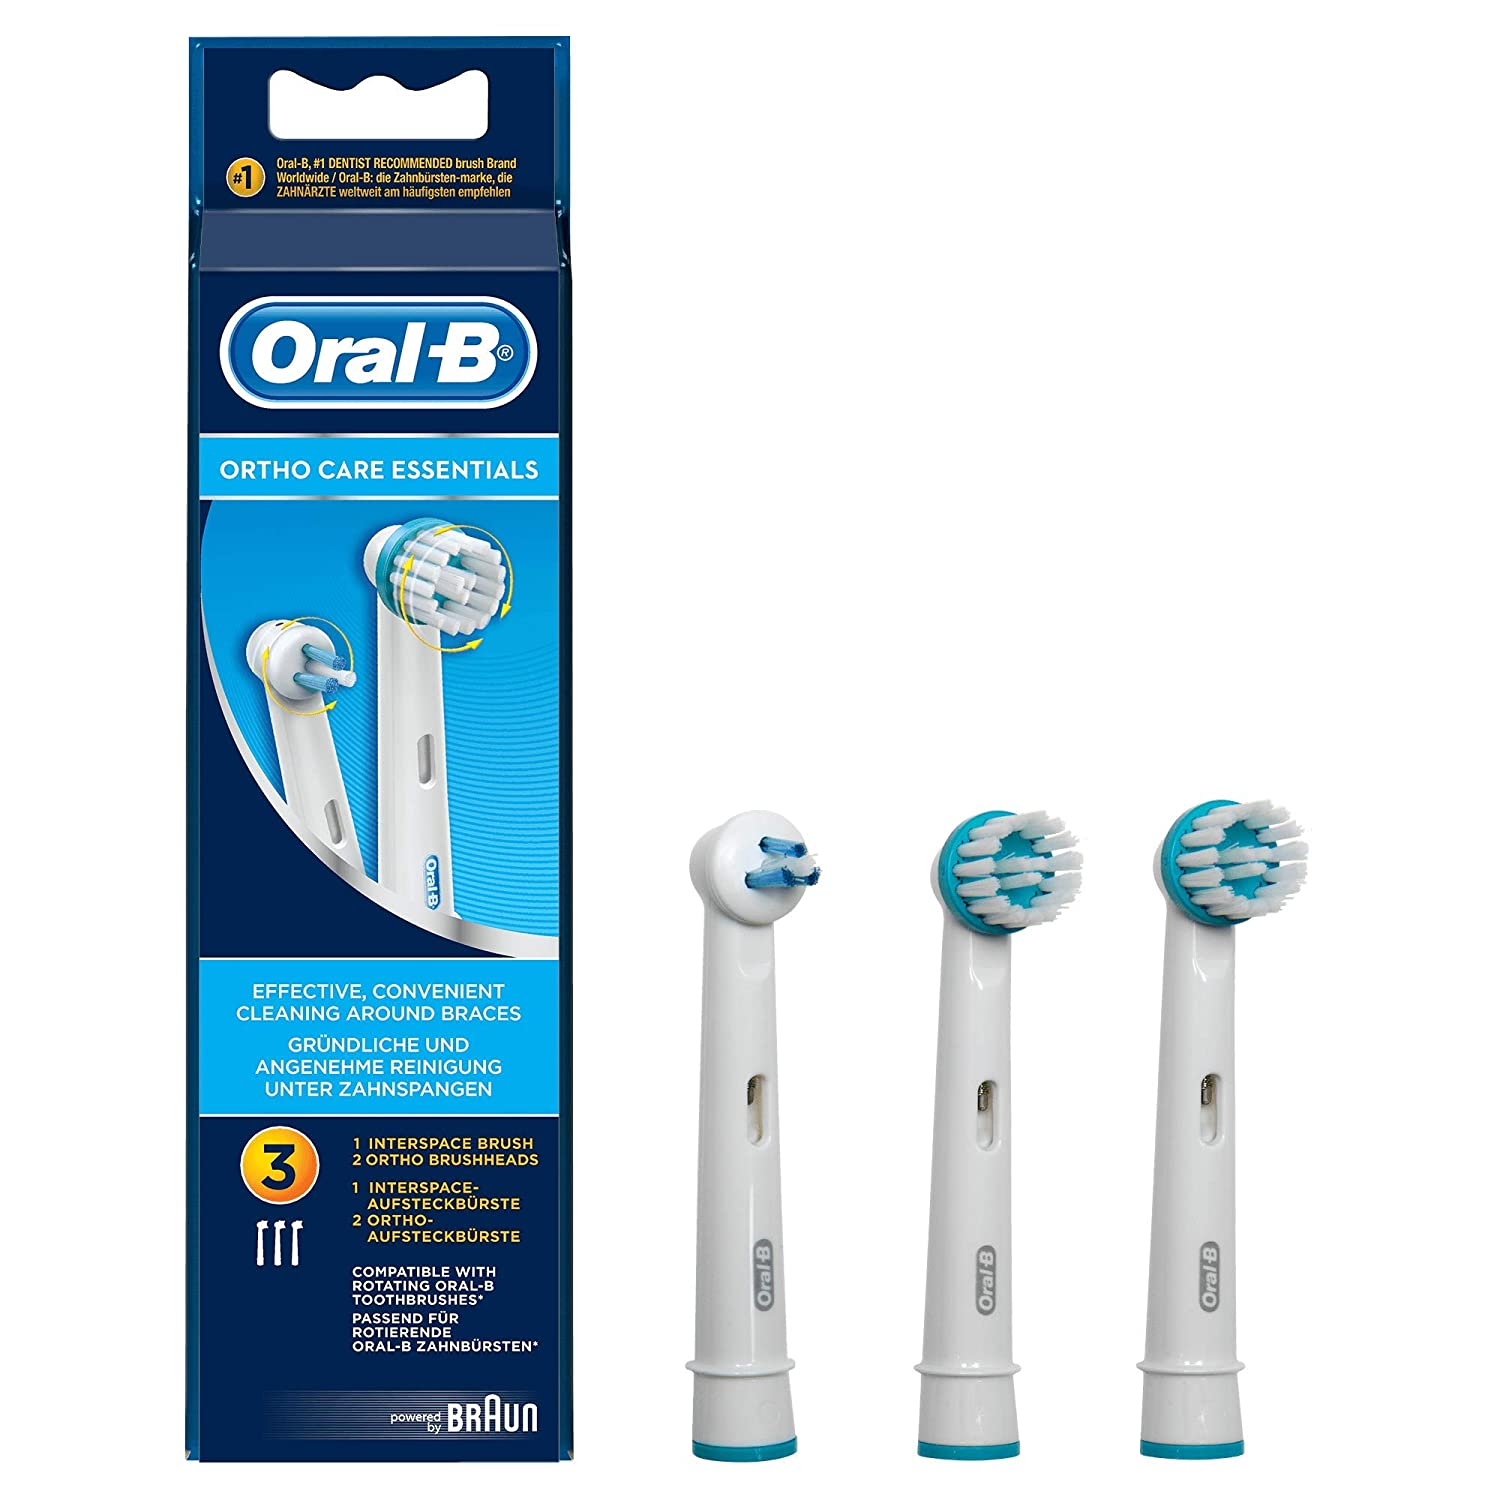 Oral-B Genuine Ortho Care Essentials Replacement Heads, 1